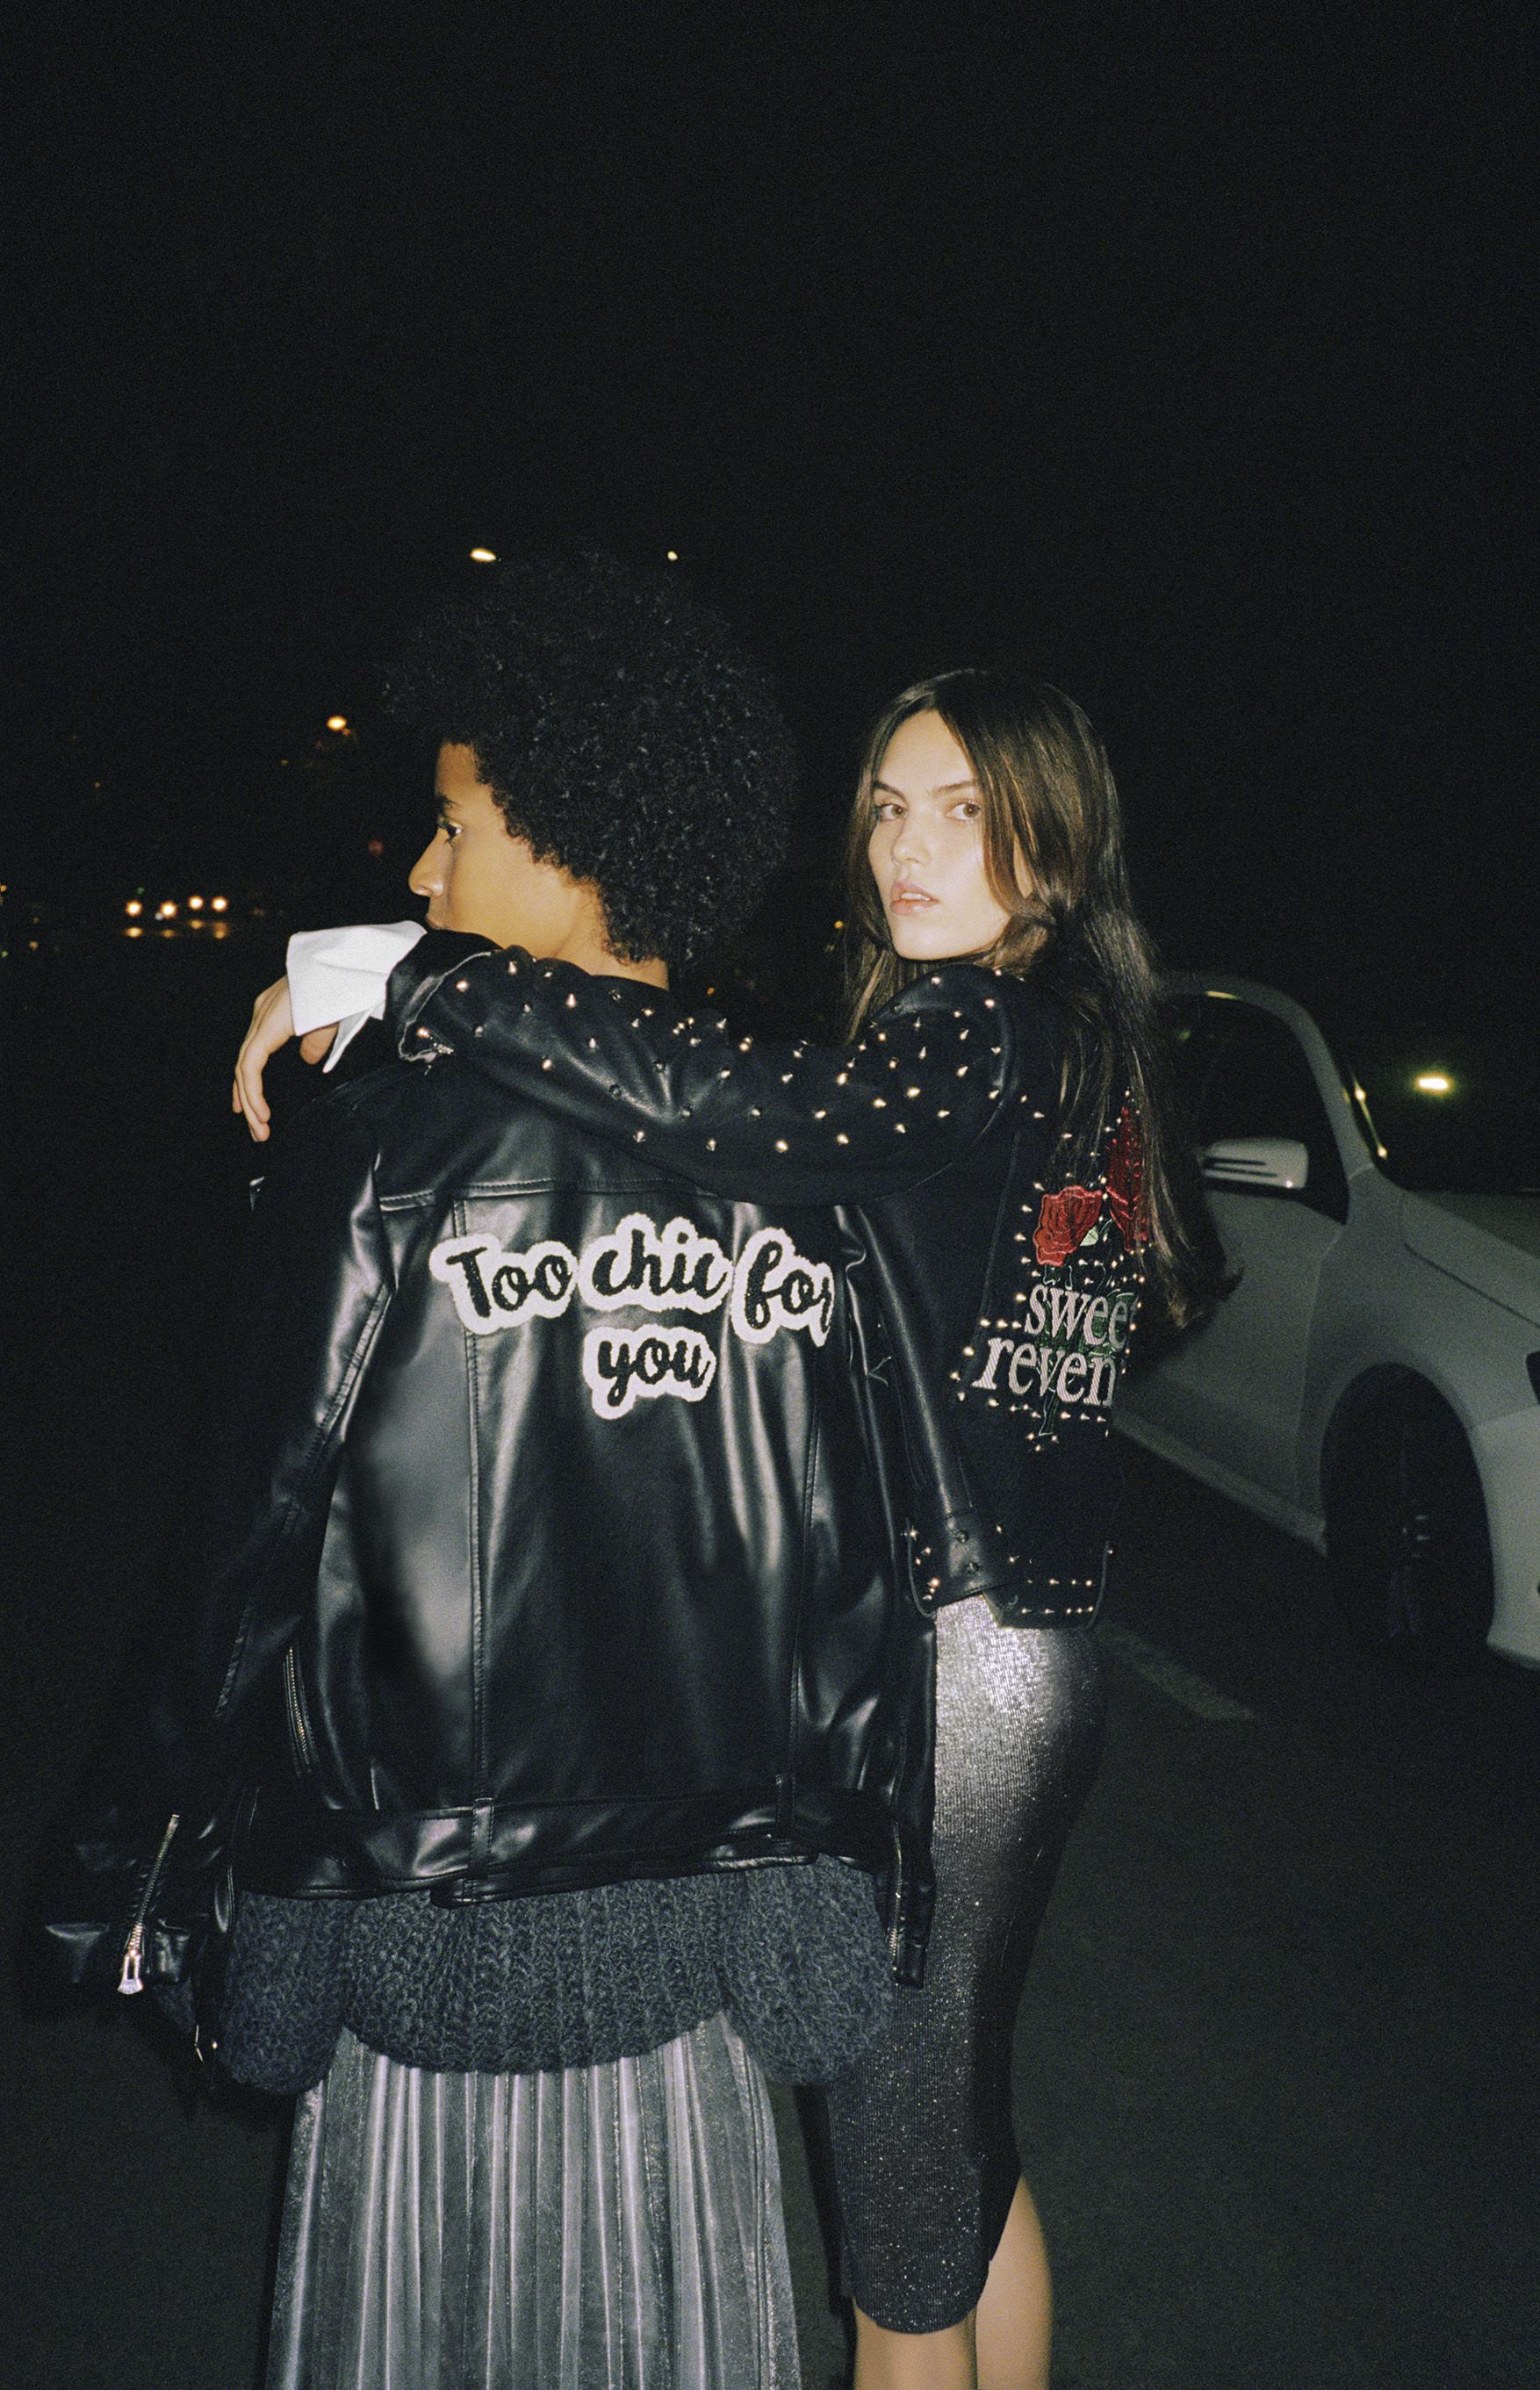 We Party Pull Bear S Party Collection Aw 16 More At Www Pullandbear Com